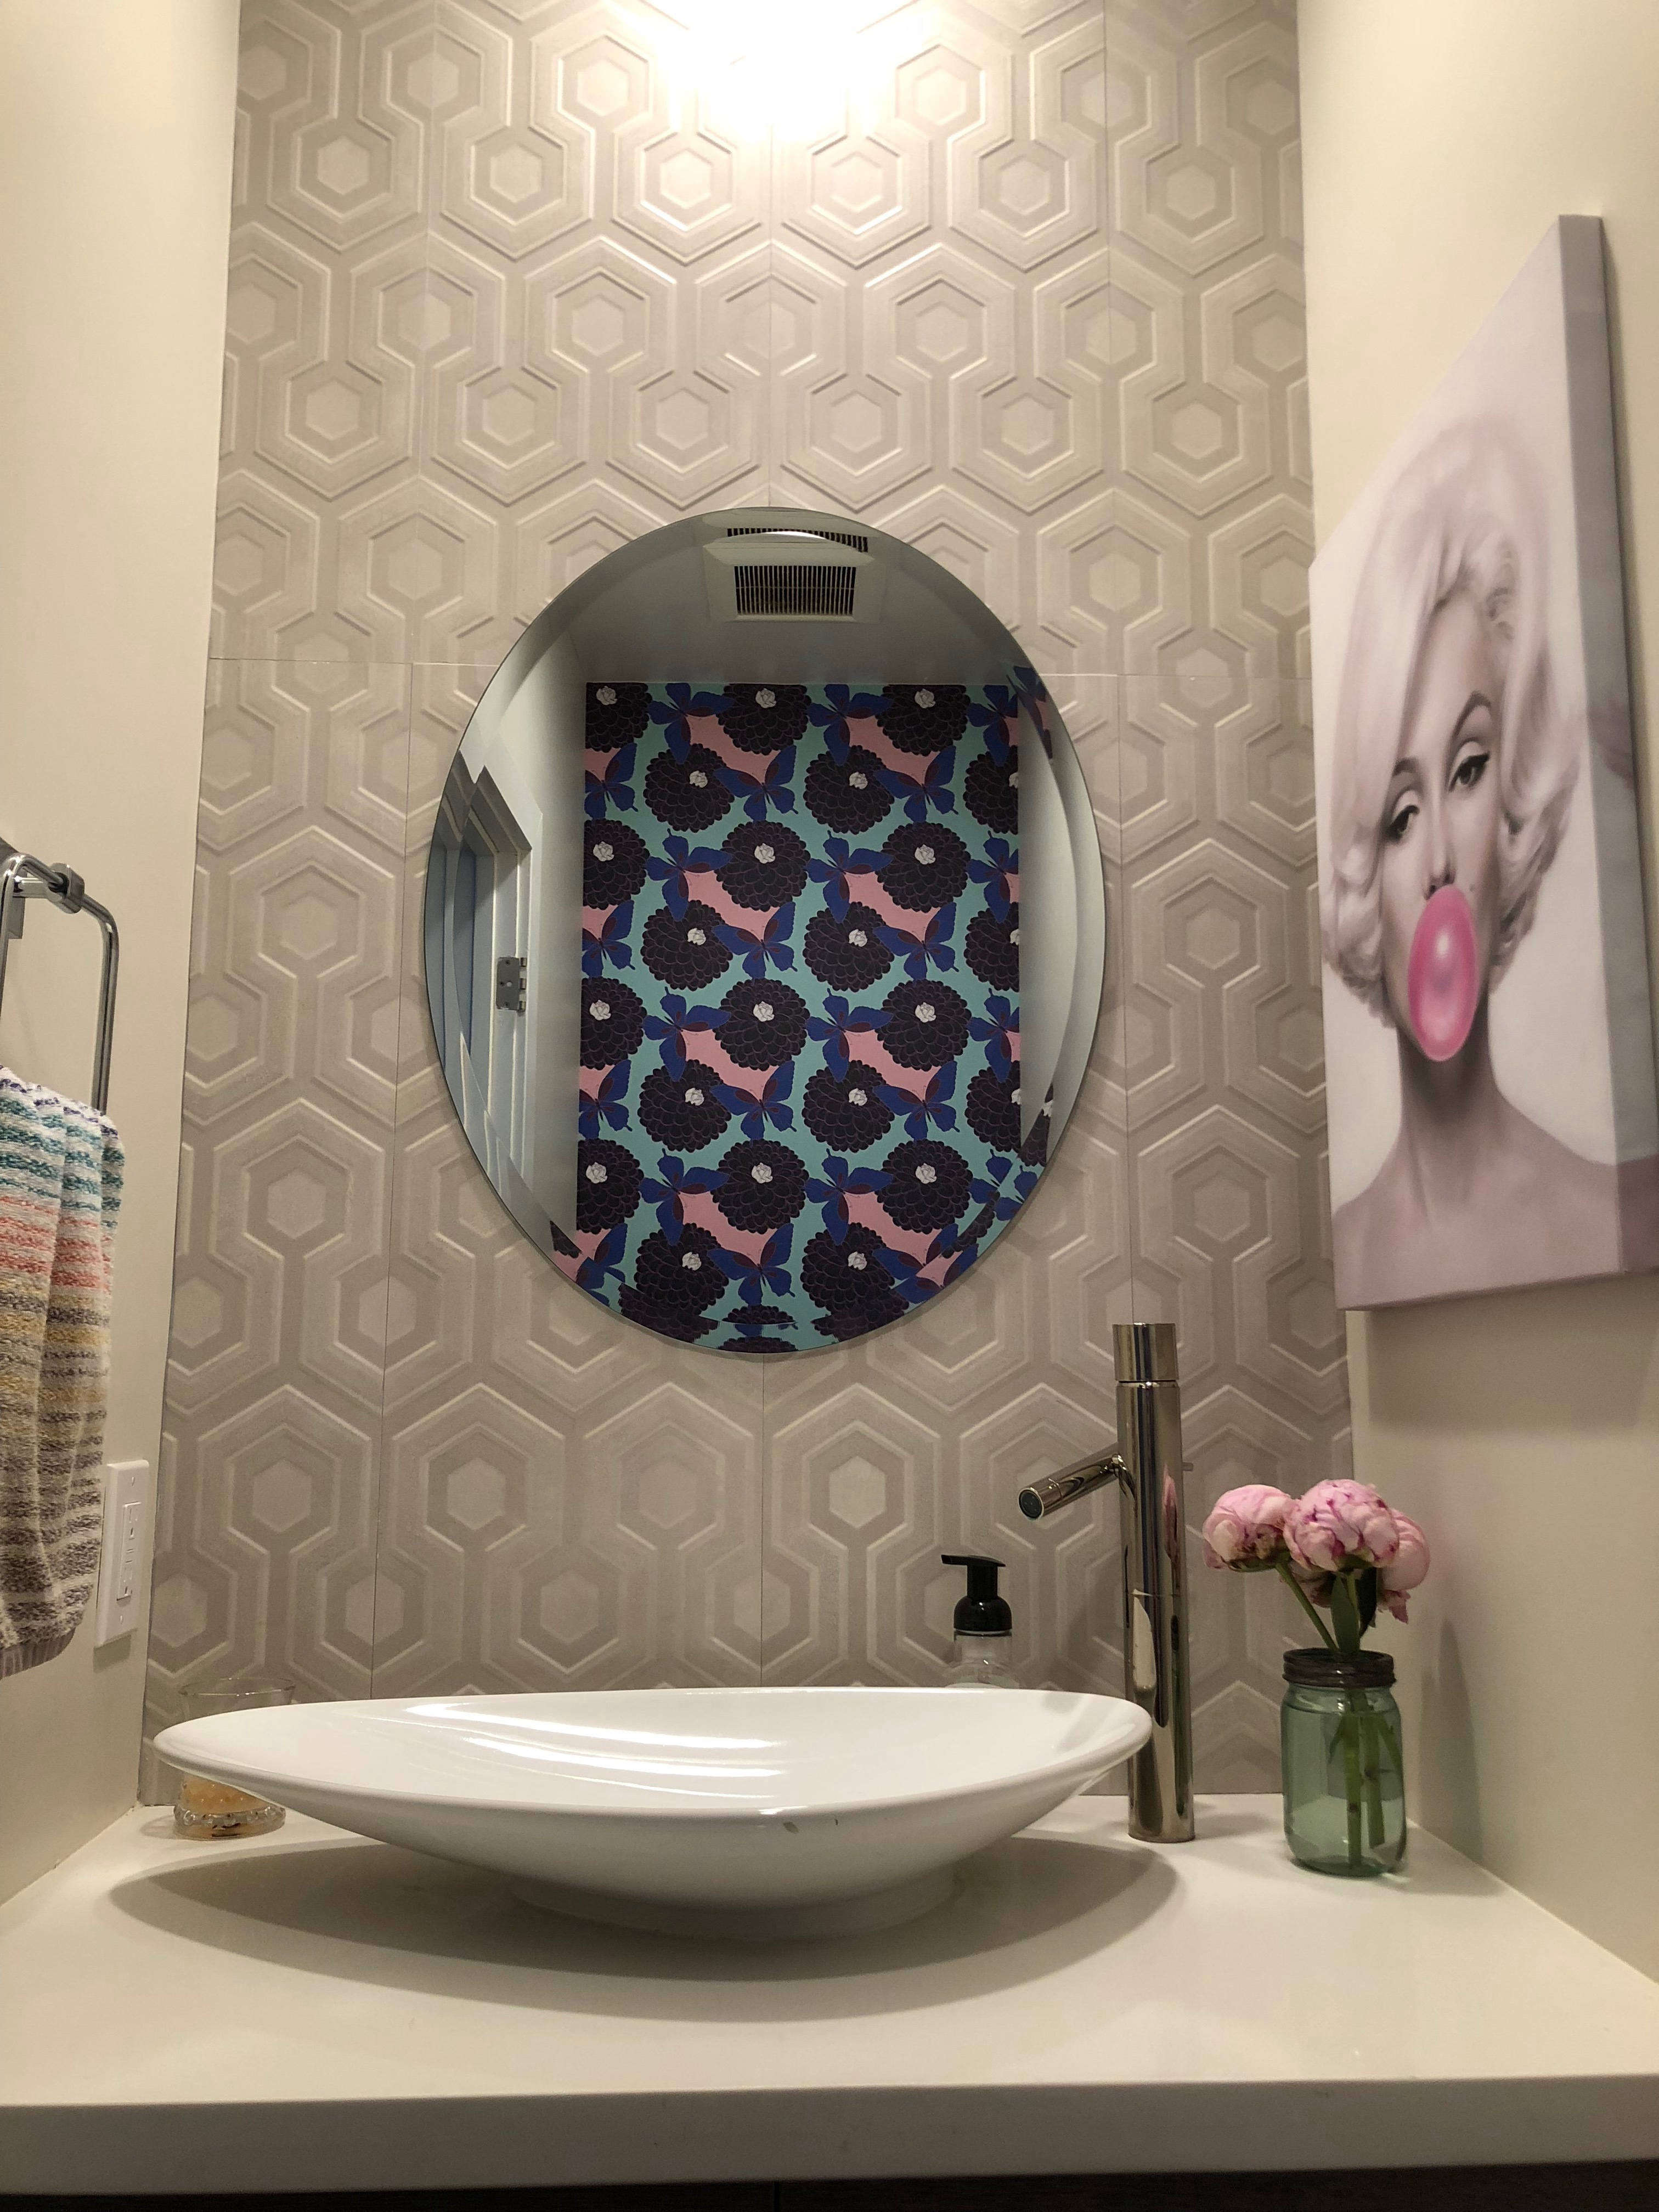 Photos Of Small Living Rooms Decorated: Making A Small Powder Room Pretty